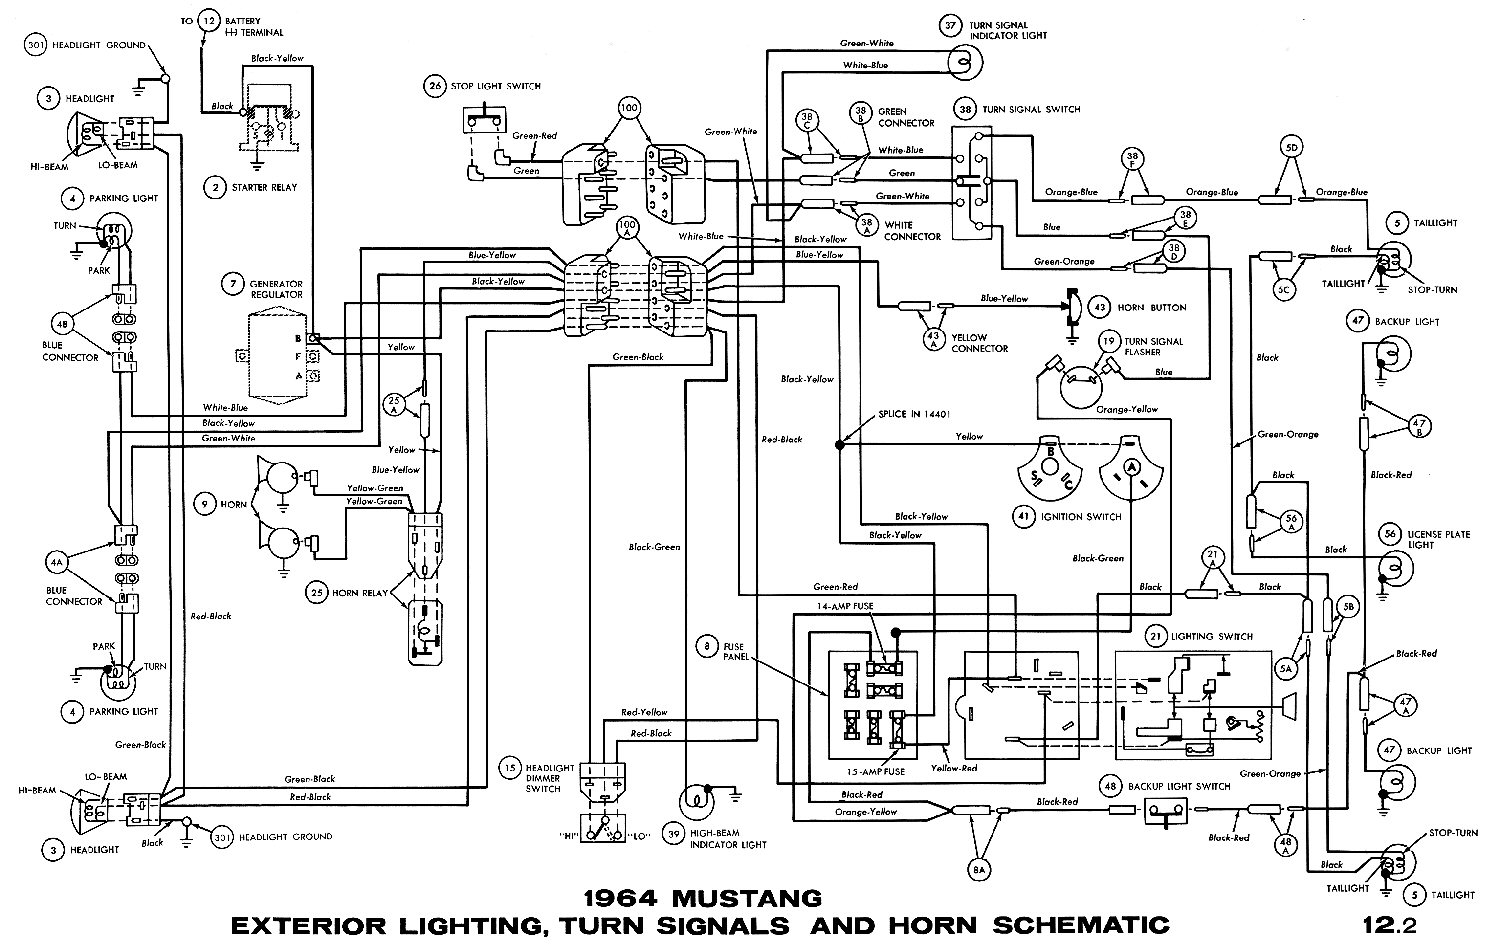 1964 Mustang Wiring Diagrams Average Joe Restoration Sw Headlamps